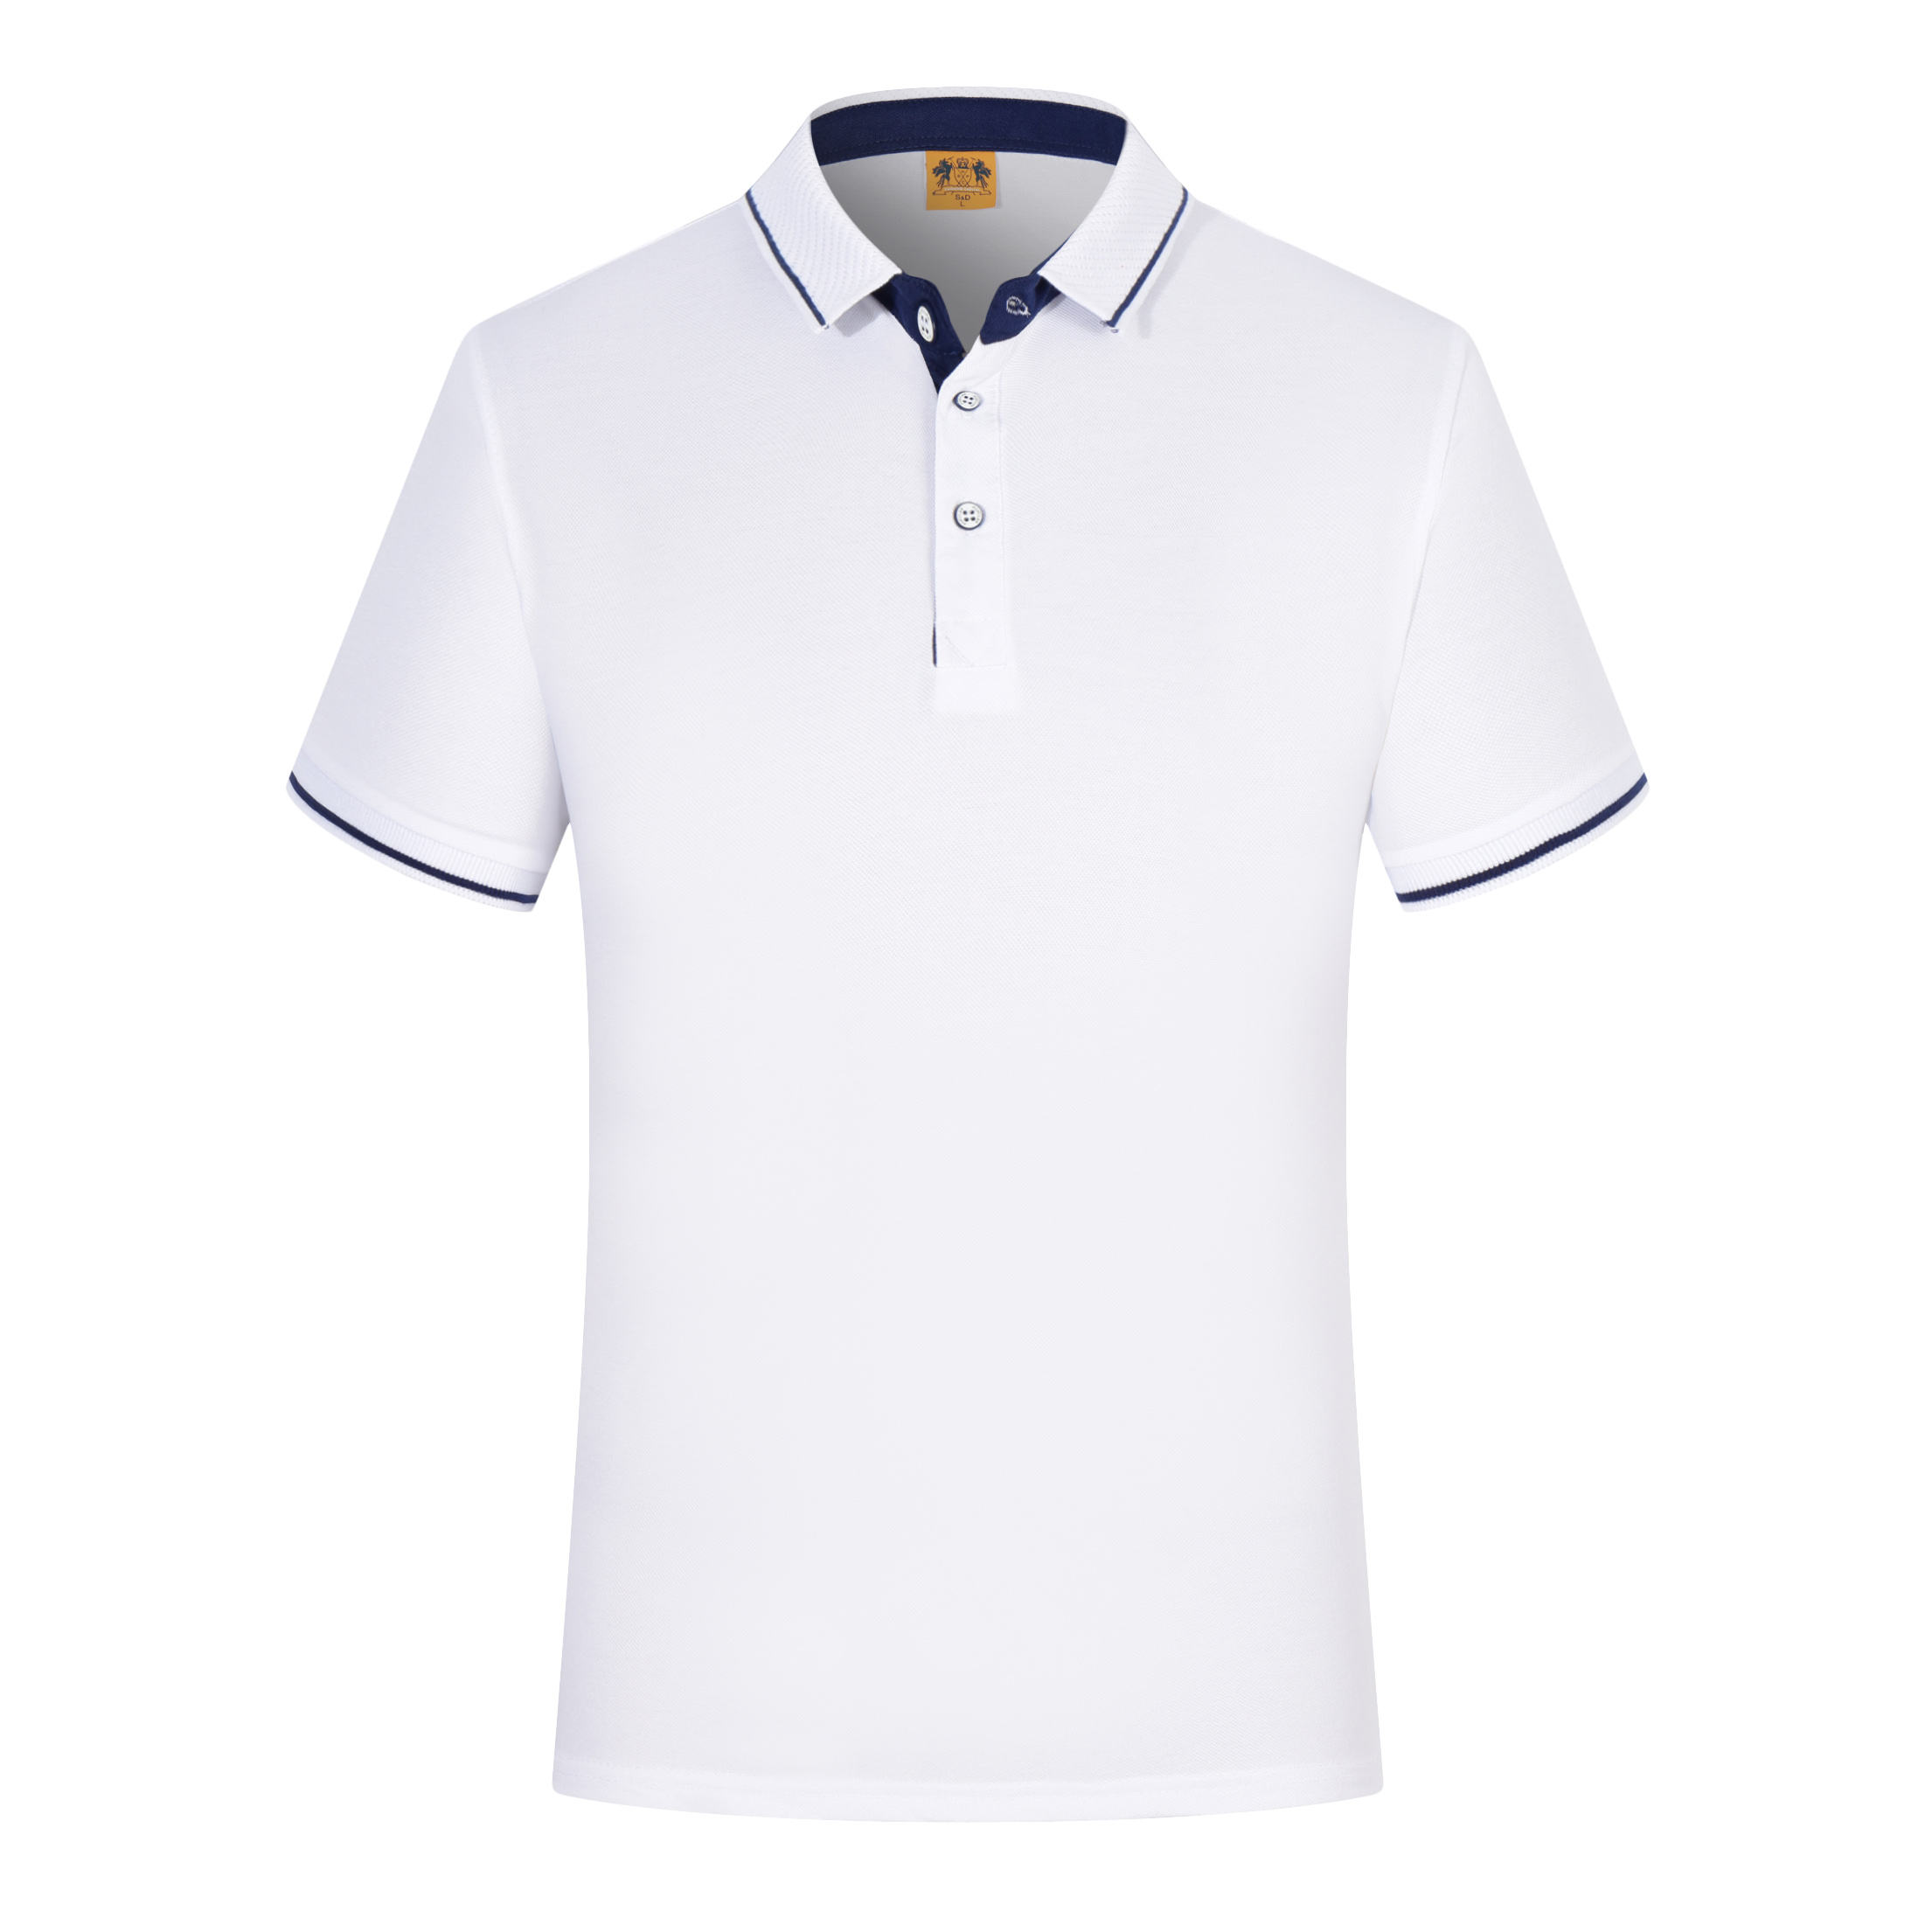 Custom team dragen mens droog fit golf <span class=keywords><strong>polo</strong></span> <span class=keywords><strong>dryfit</strong></span> <span class=keywords><strong>polo</strong></span>